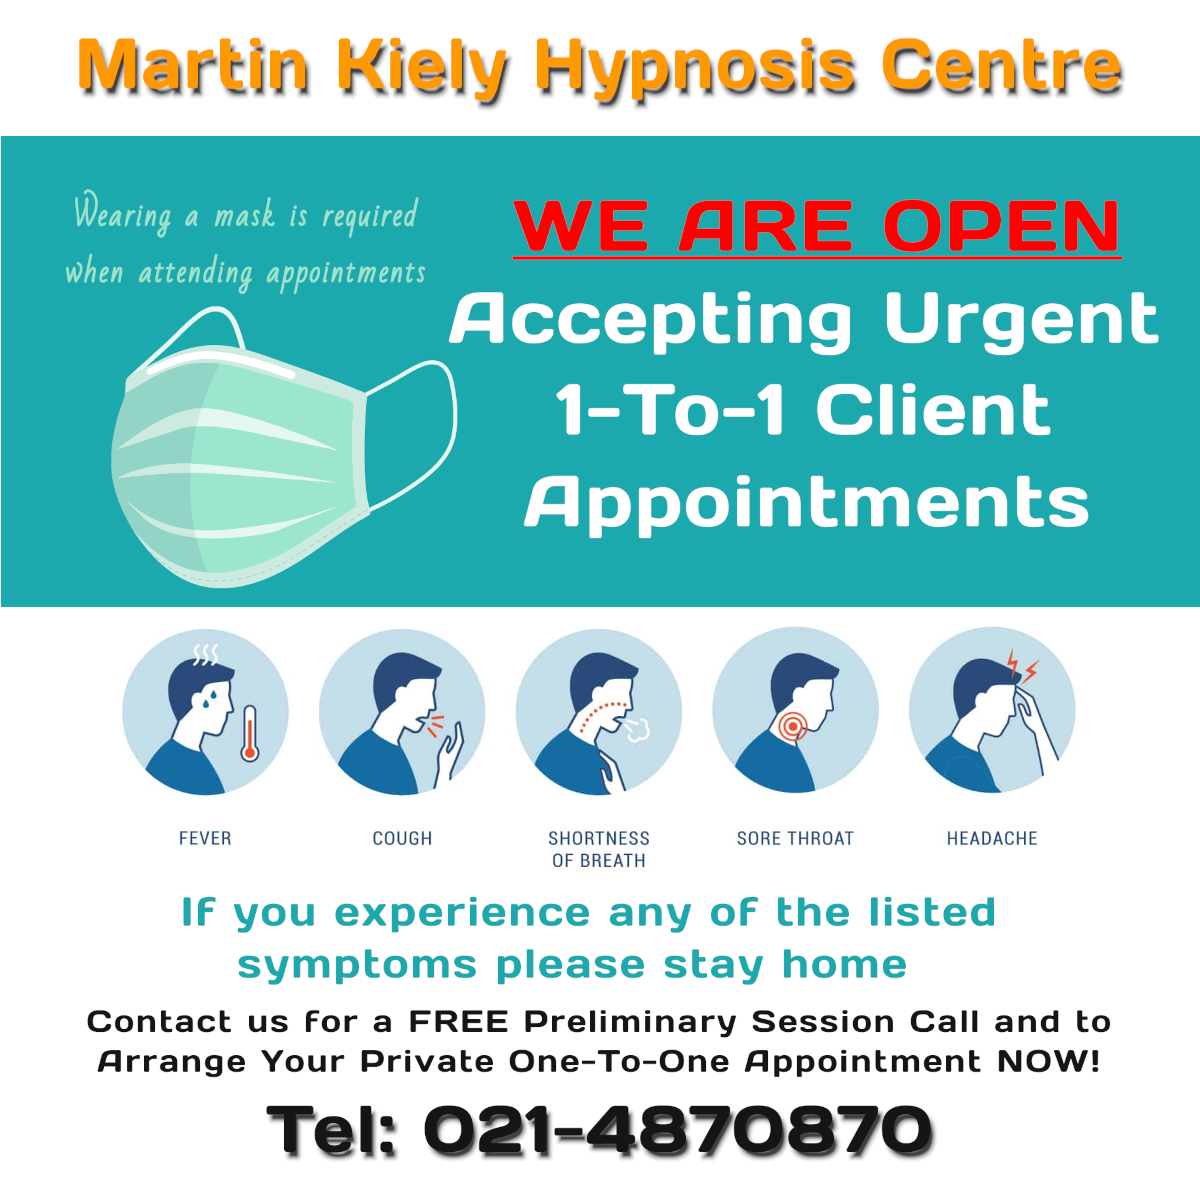 Hypnosis Hypnotherapy Cork, Ireland Appointments